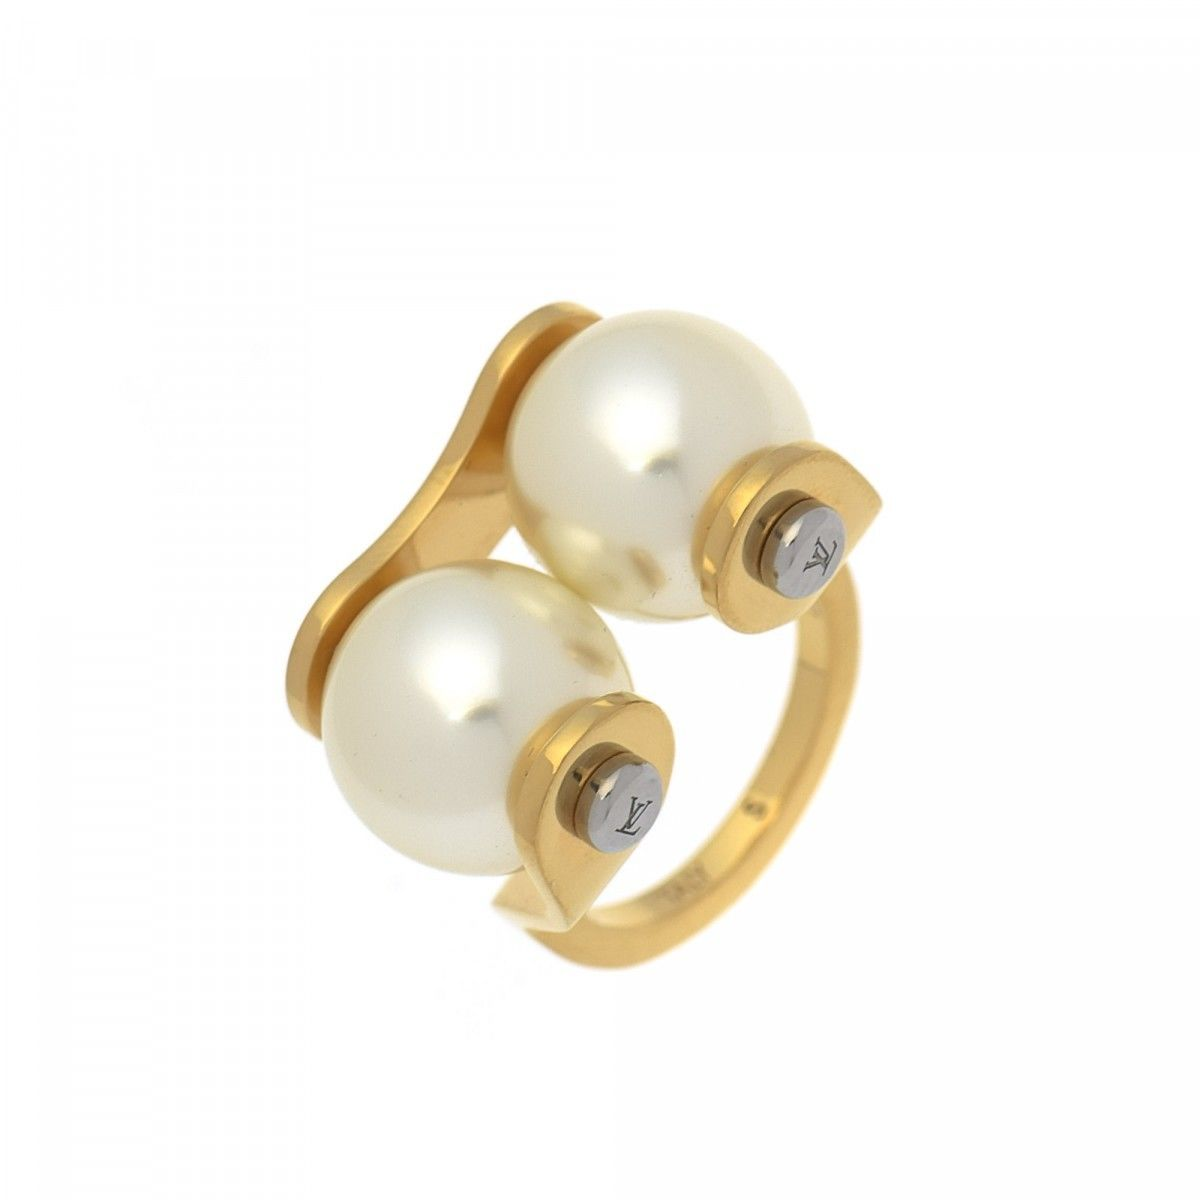 rings sea off pearl golden the retail south price best gssring shop quality